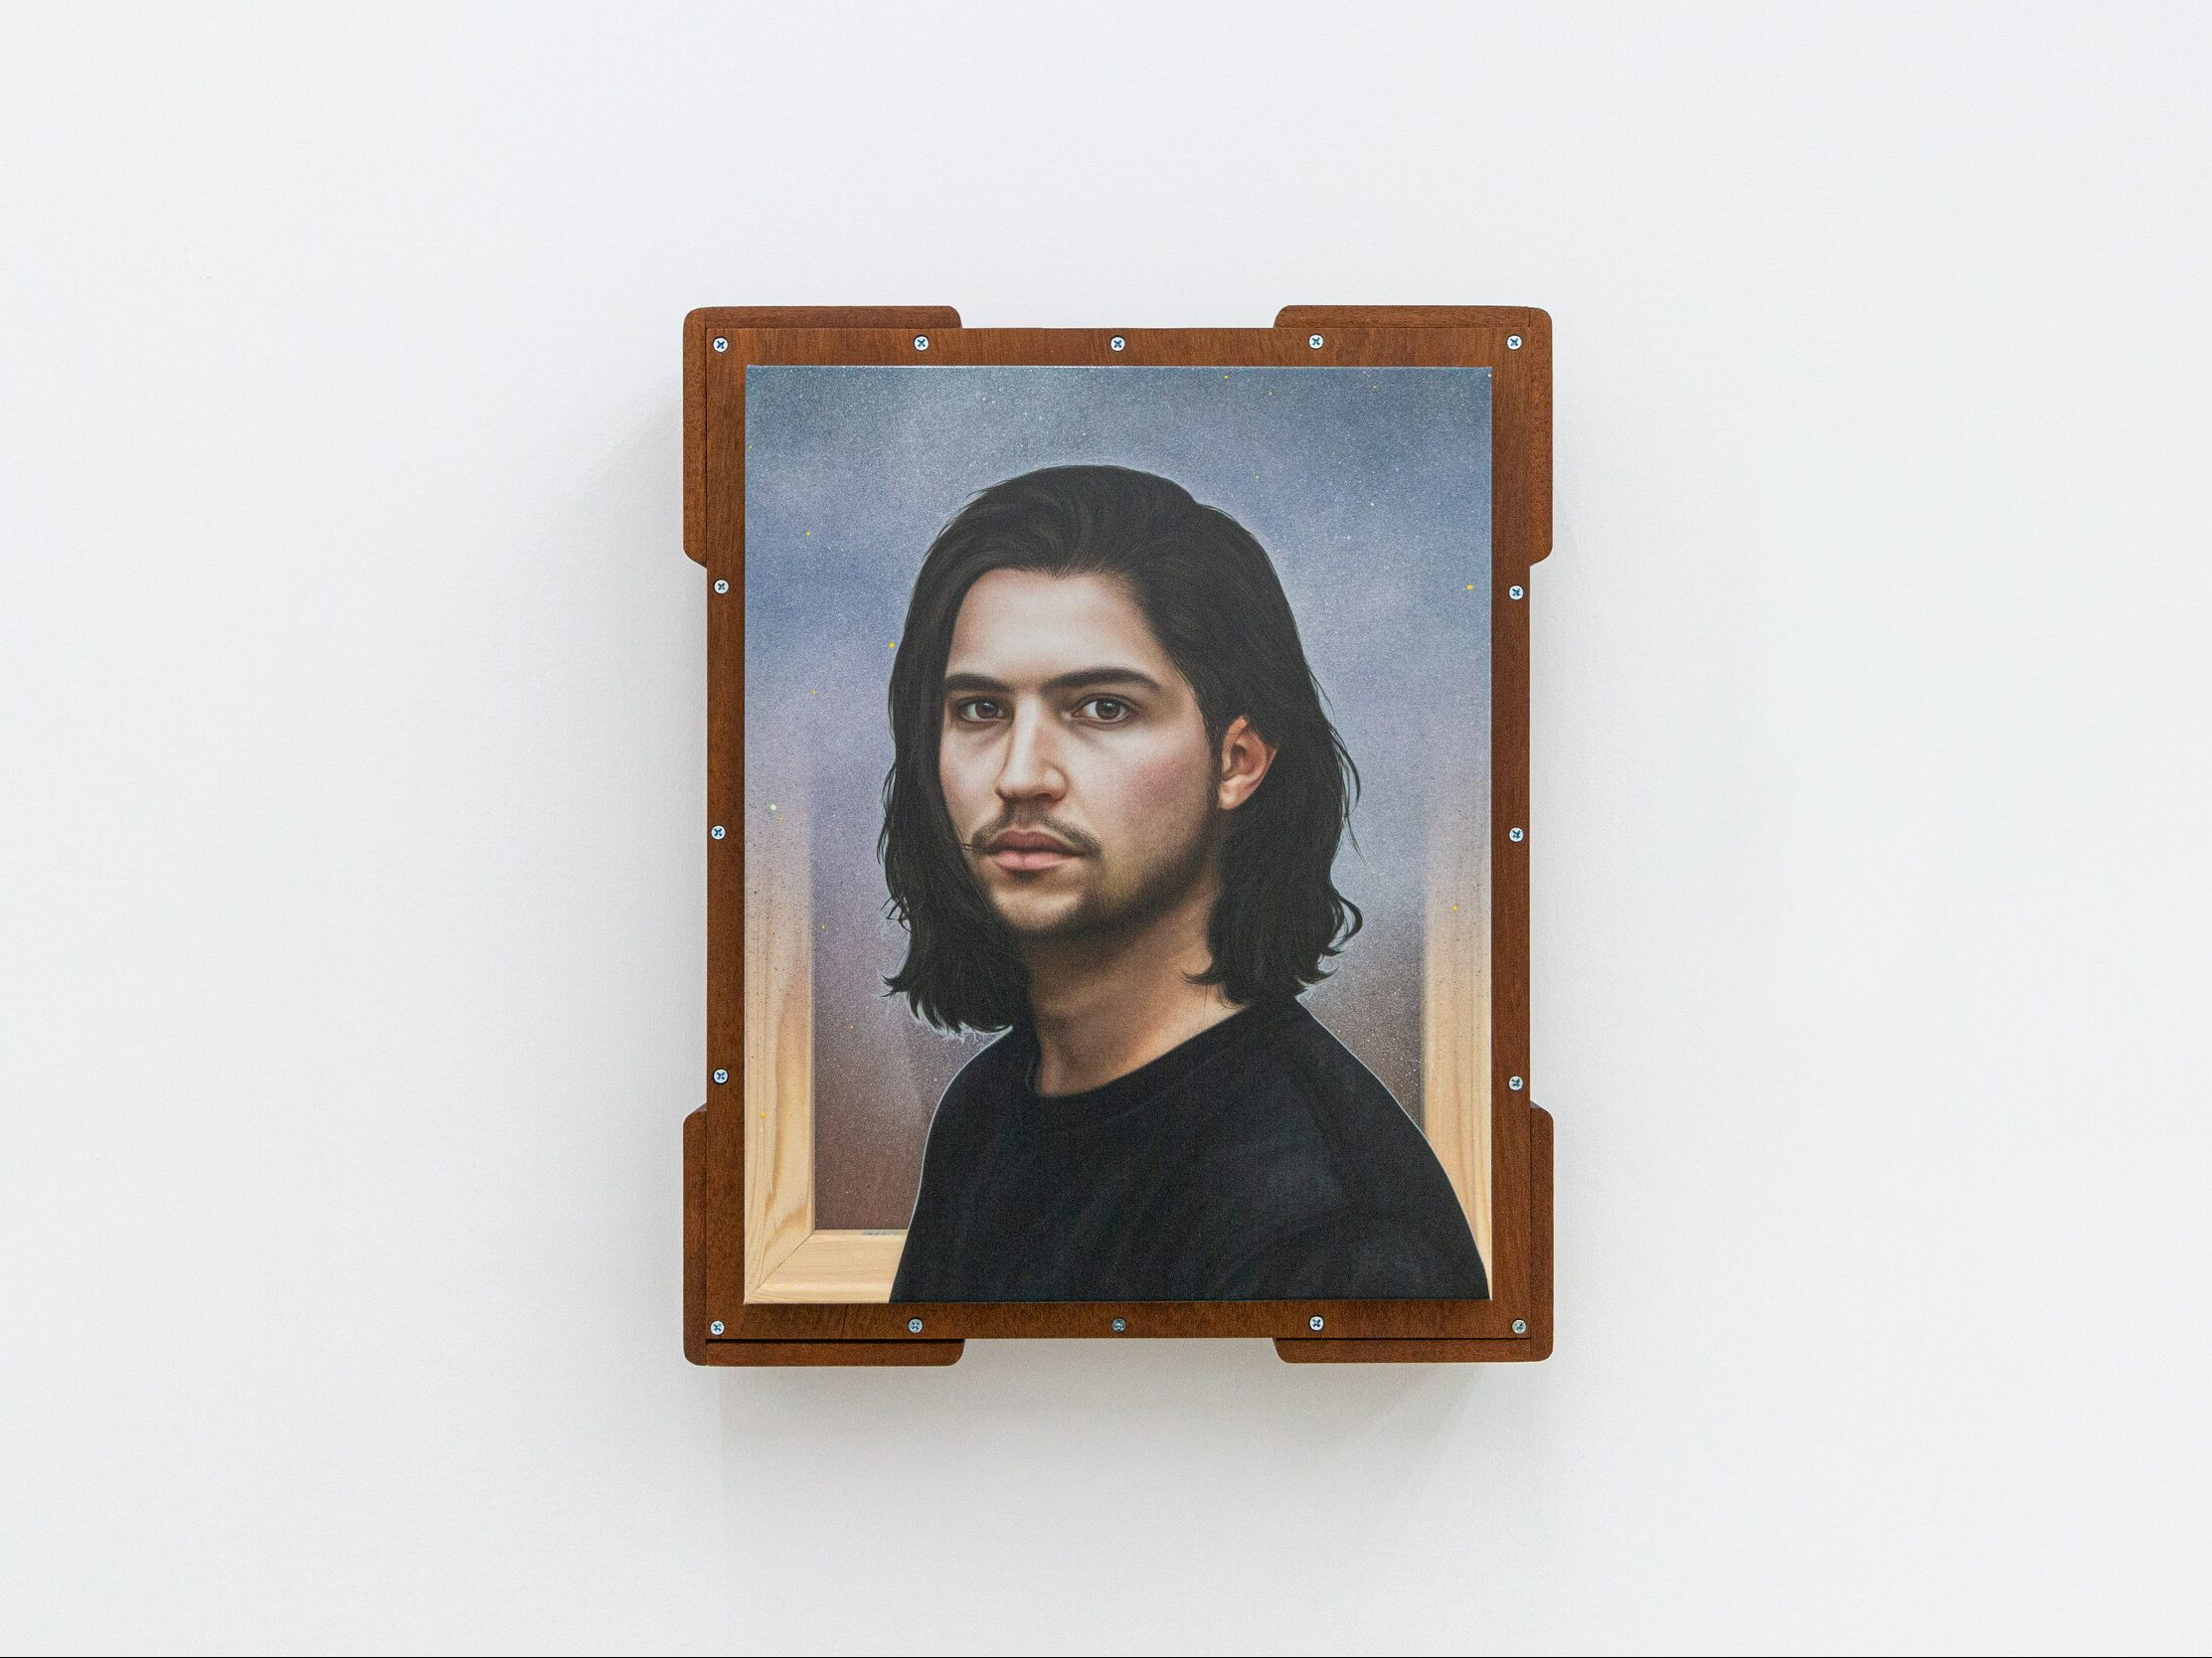 A self portrait hanging on a white wall of a person with medium-length, wavy brown hair, a 5-o'clock shadow and a black shirt stand upright and look through the canvas at the viewer.